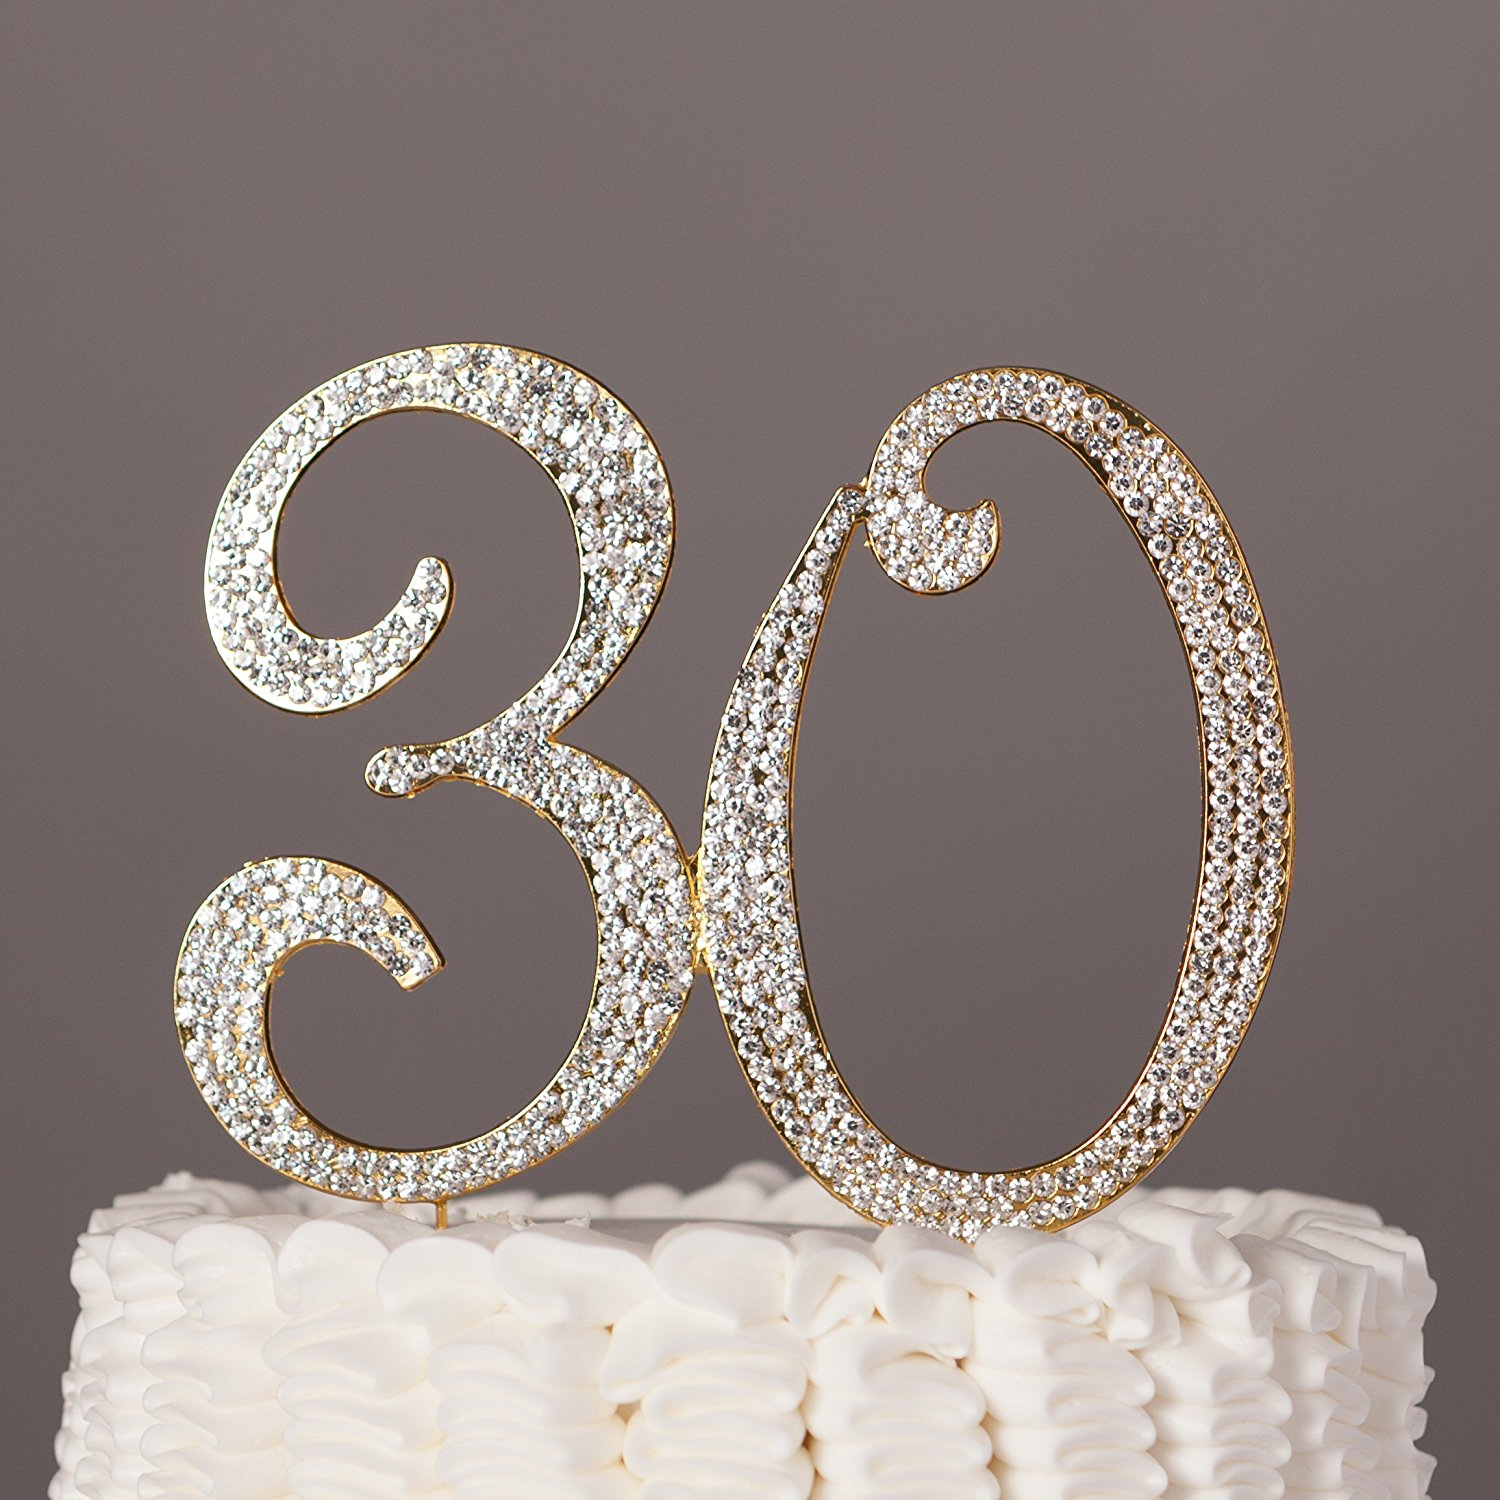 30 Cake Topper for 30th Birthday or Anniversary Silver Crystal Rhinestone Party Decoration (Silver)